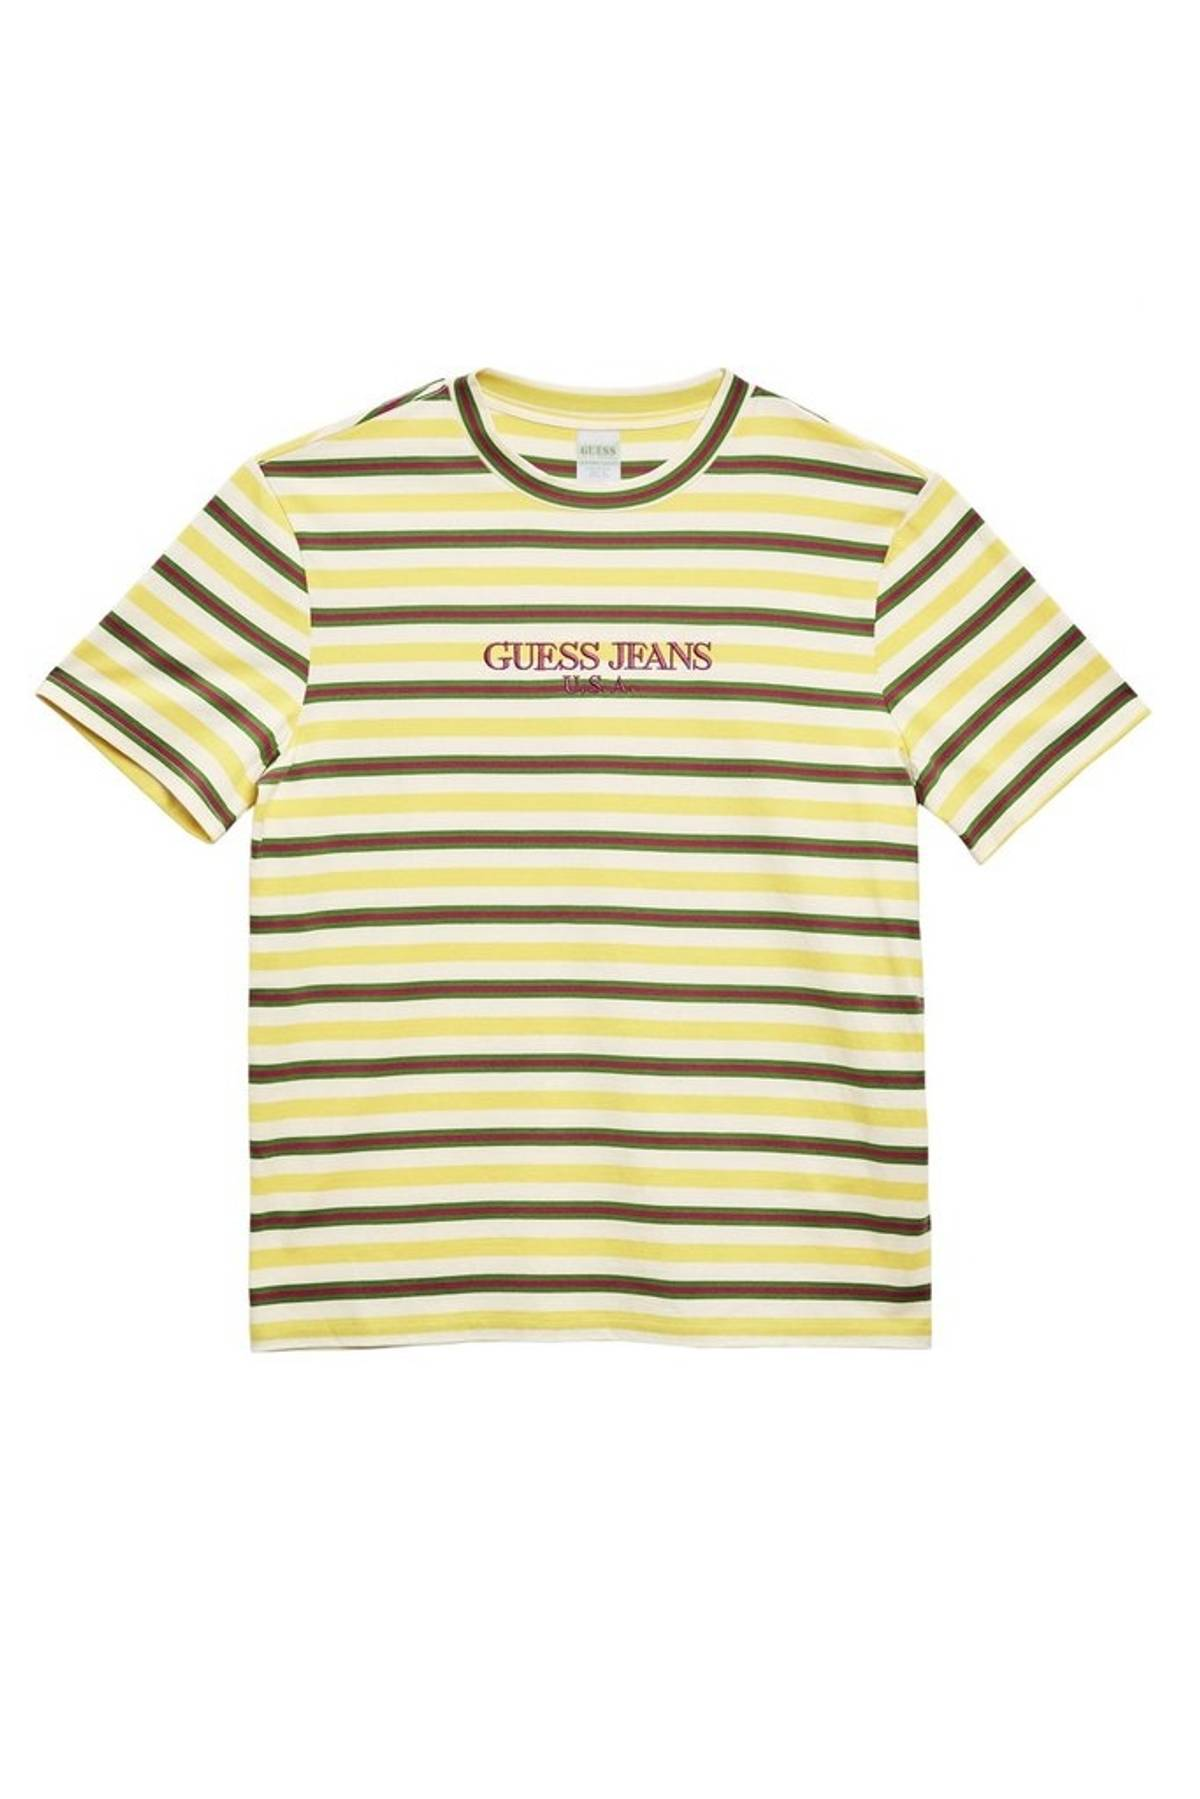 Guess Jeans Striped T Shirt Australia Ficts